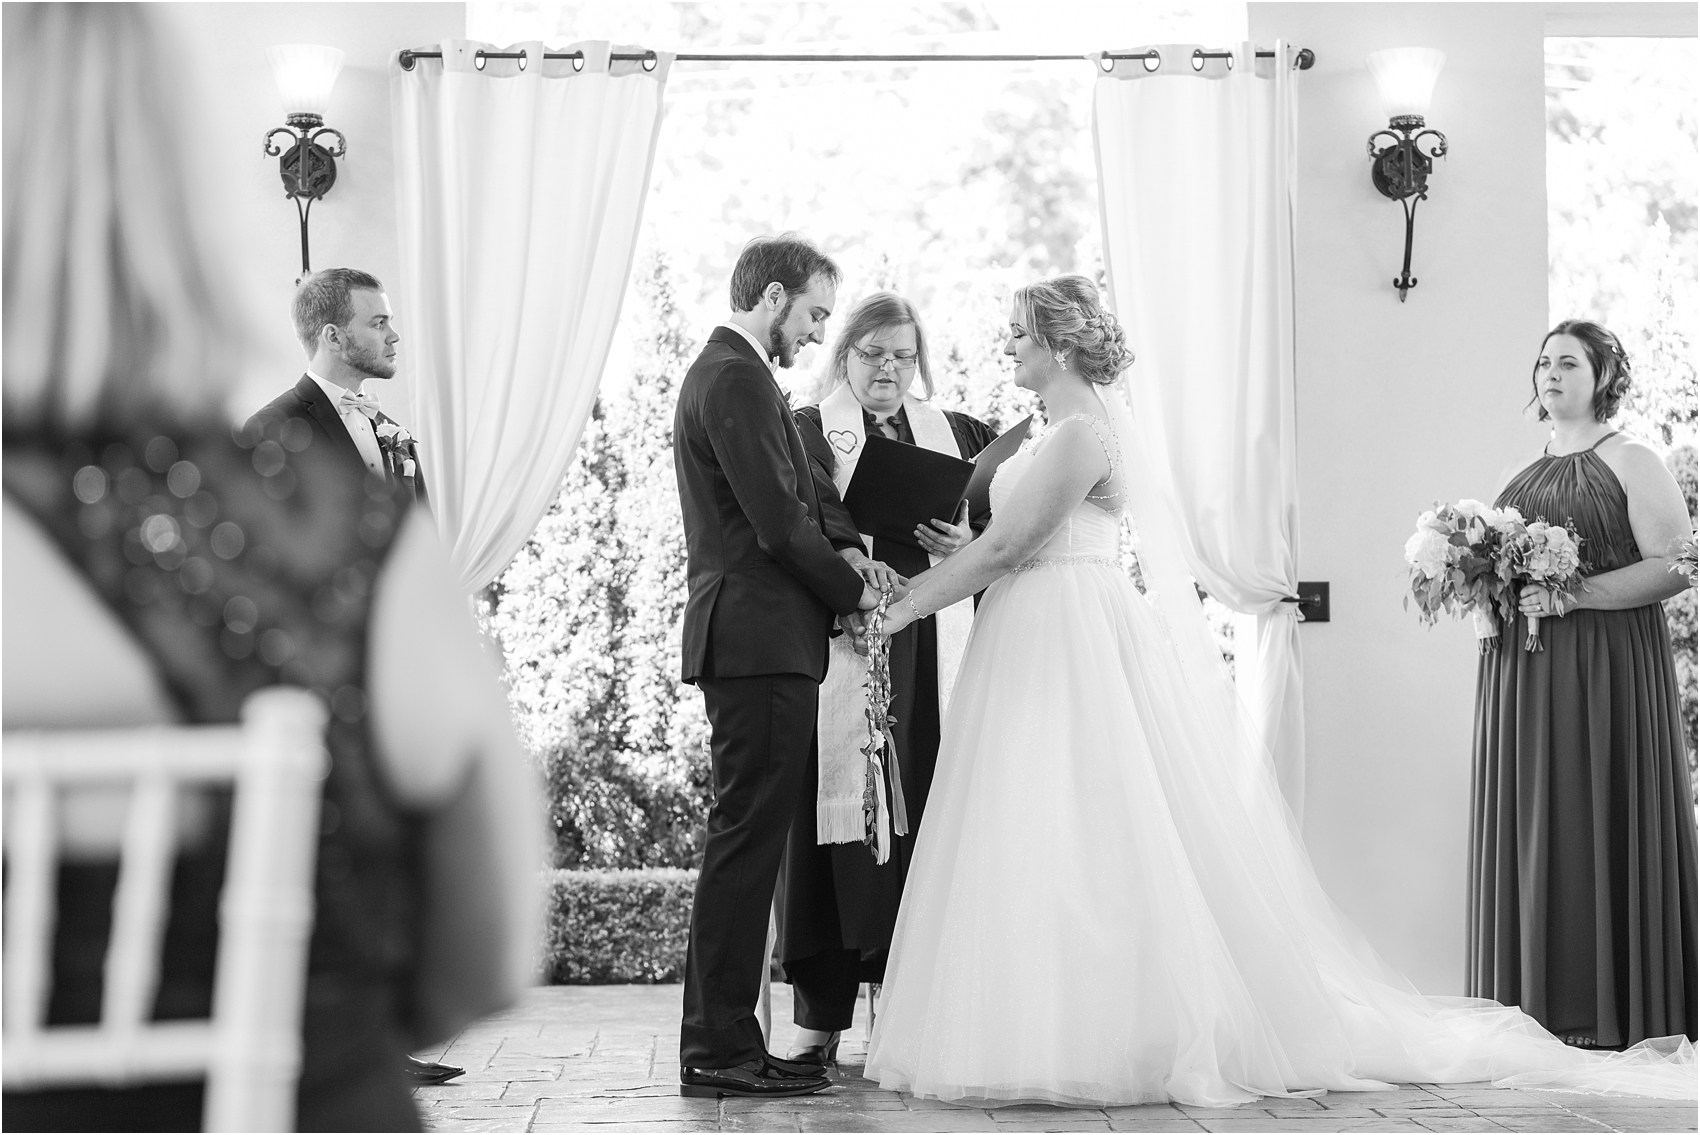 lord-of-the-rings-inspired-wedding-photos-at-crystal-gardens-in-howell-mi-by-courtney-carolyn-photography_0039.jpg